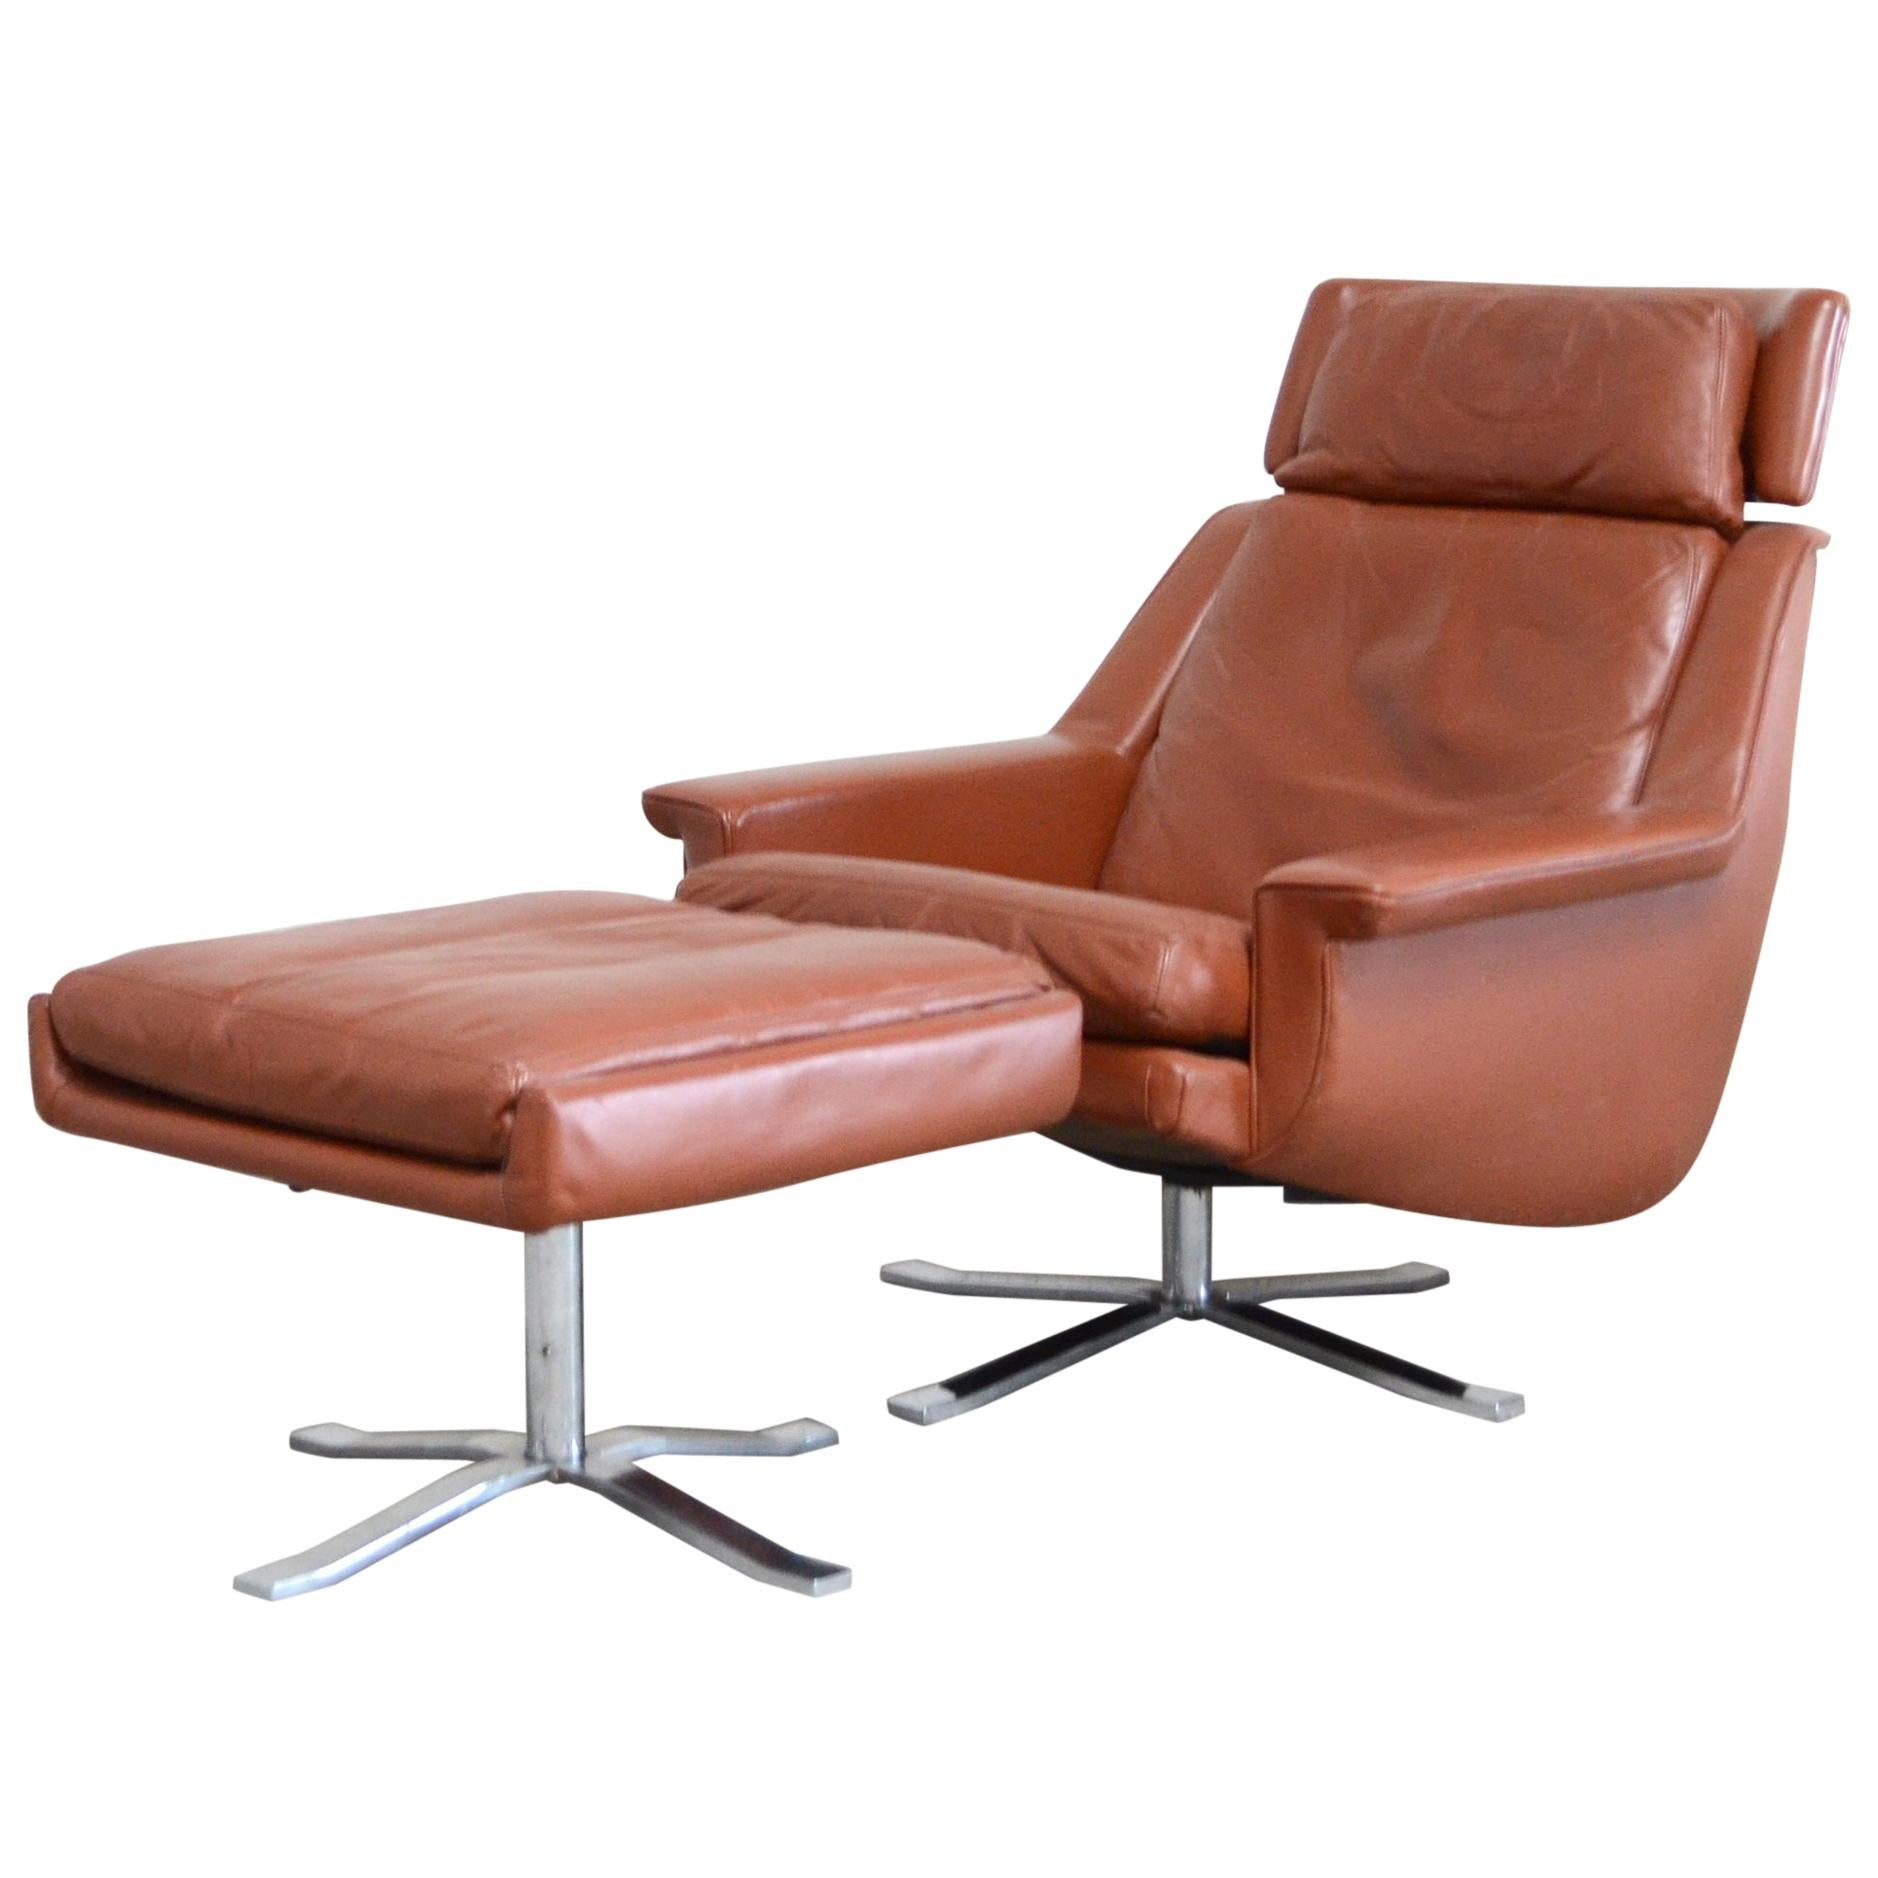 Esa Model 802 Leather Danish Lounge Chair & Ottoman by Werner Langenfeld, 1960